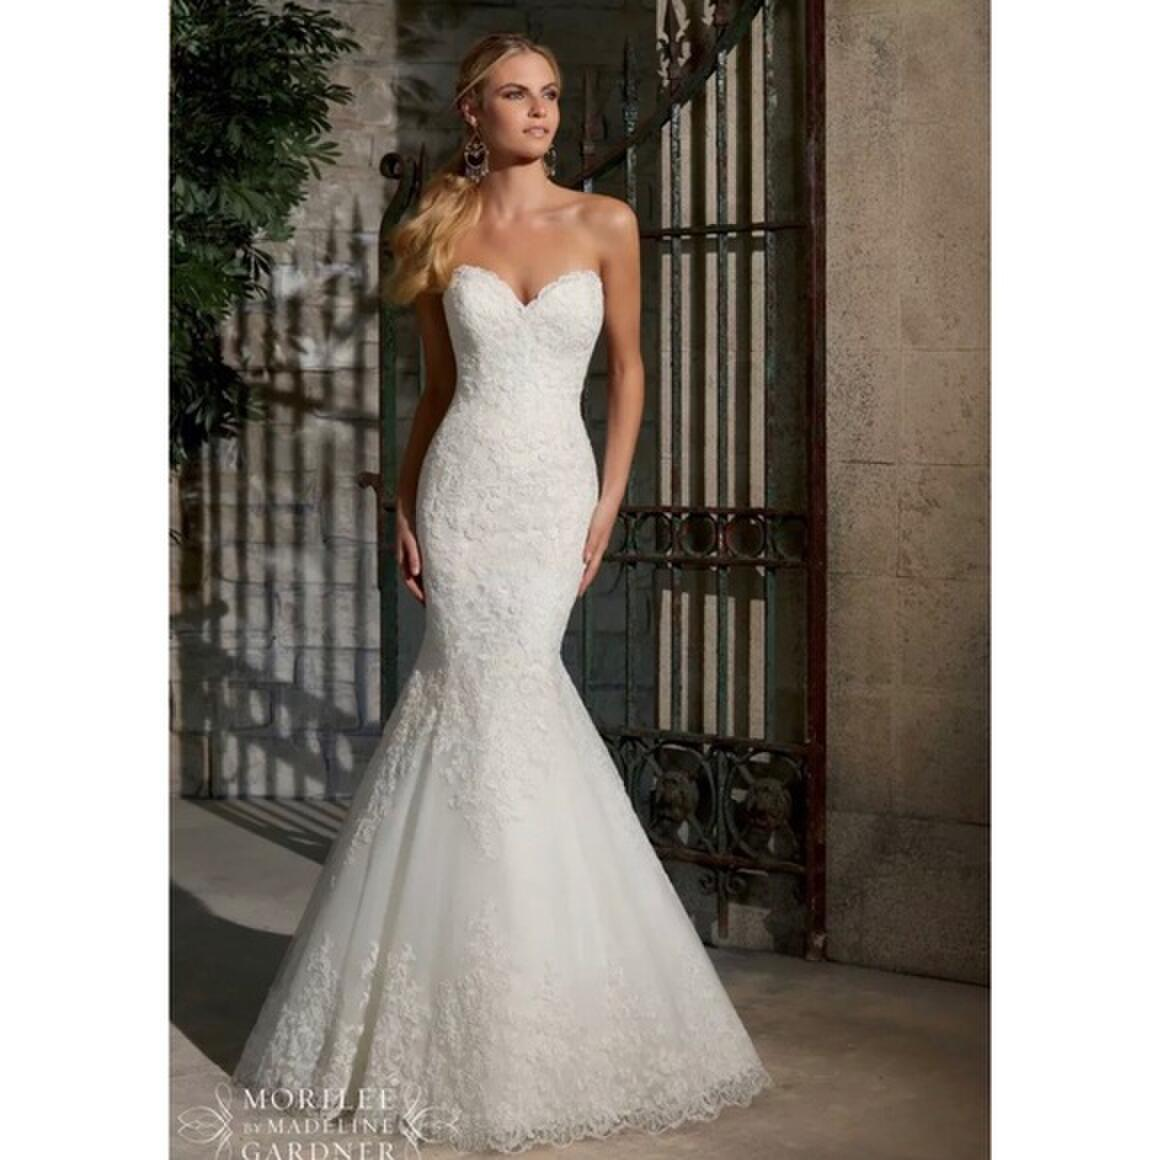 Morilee Bridal Gown Ivory Lace